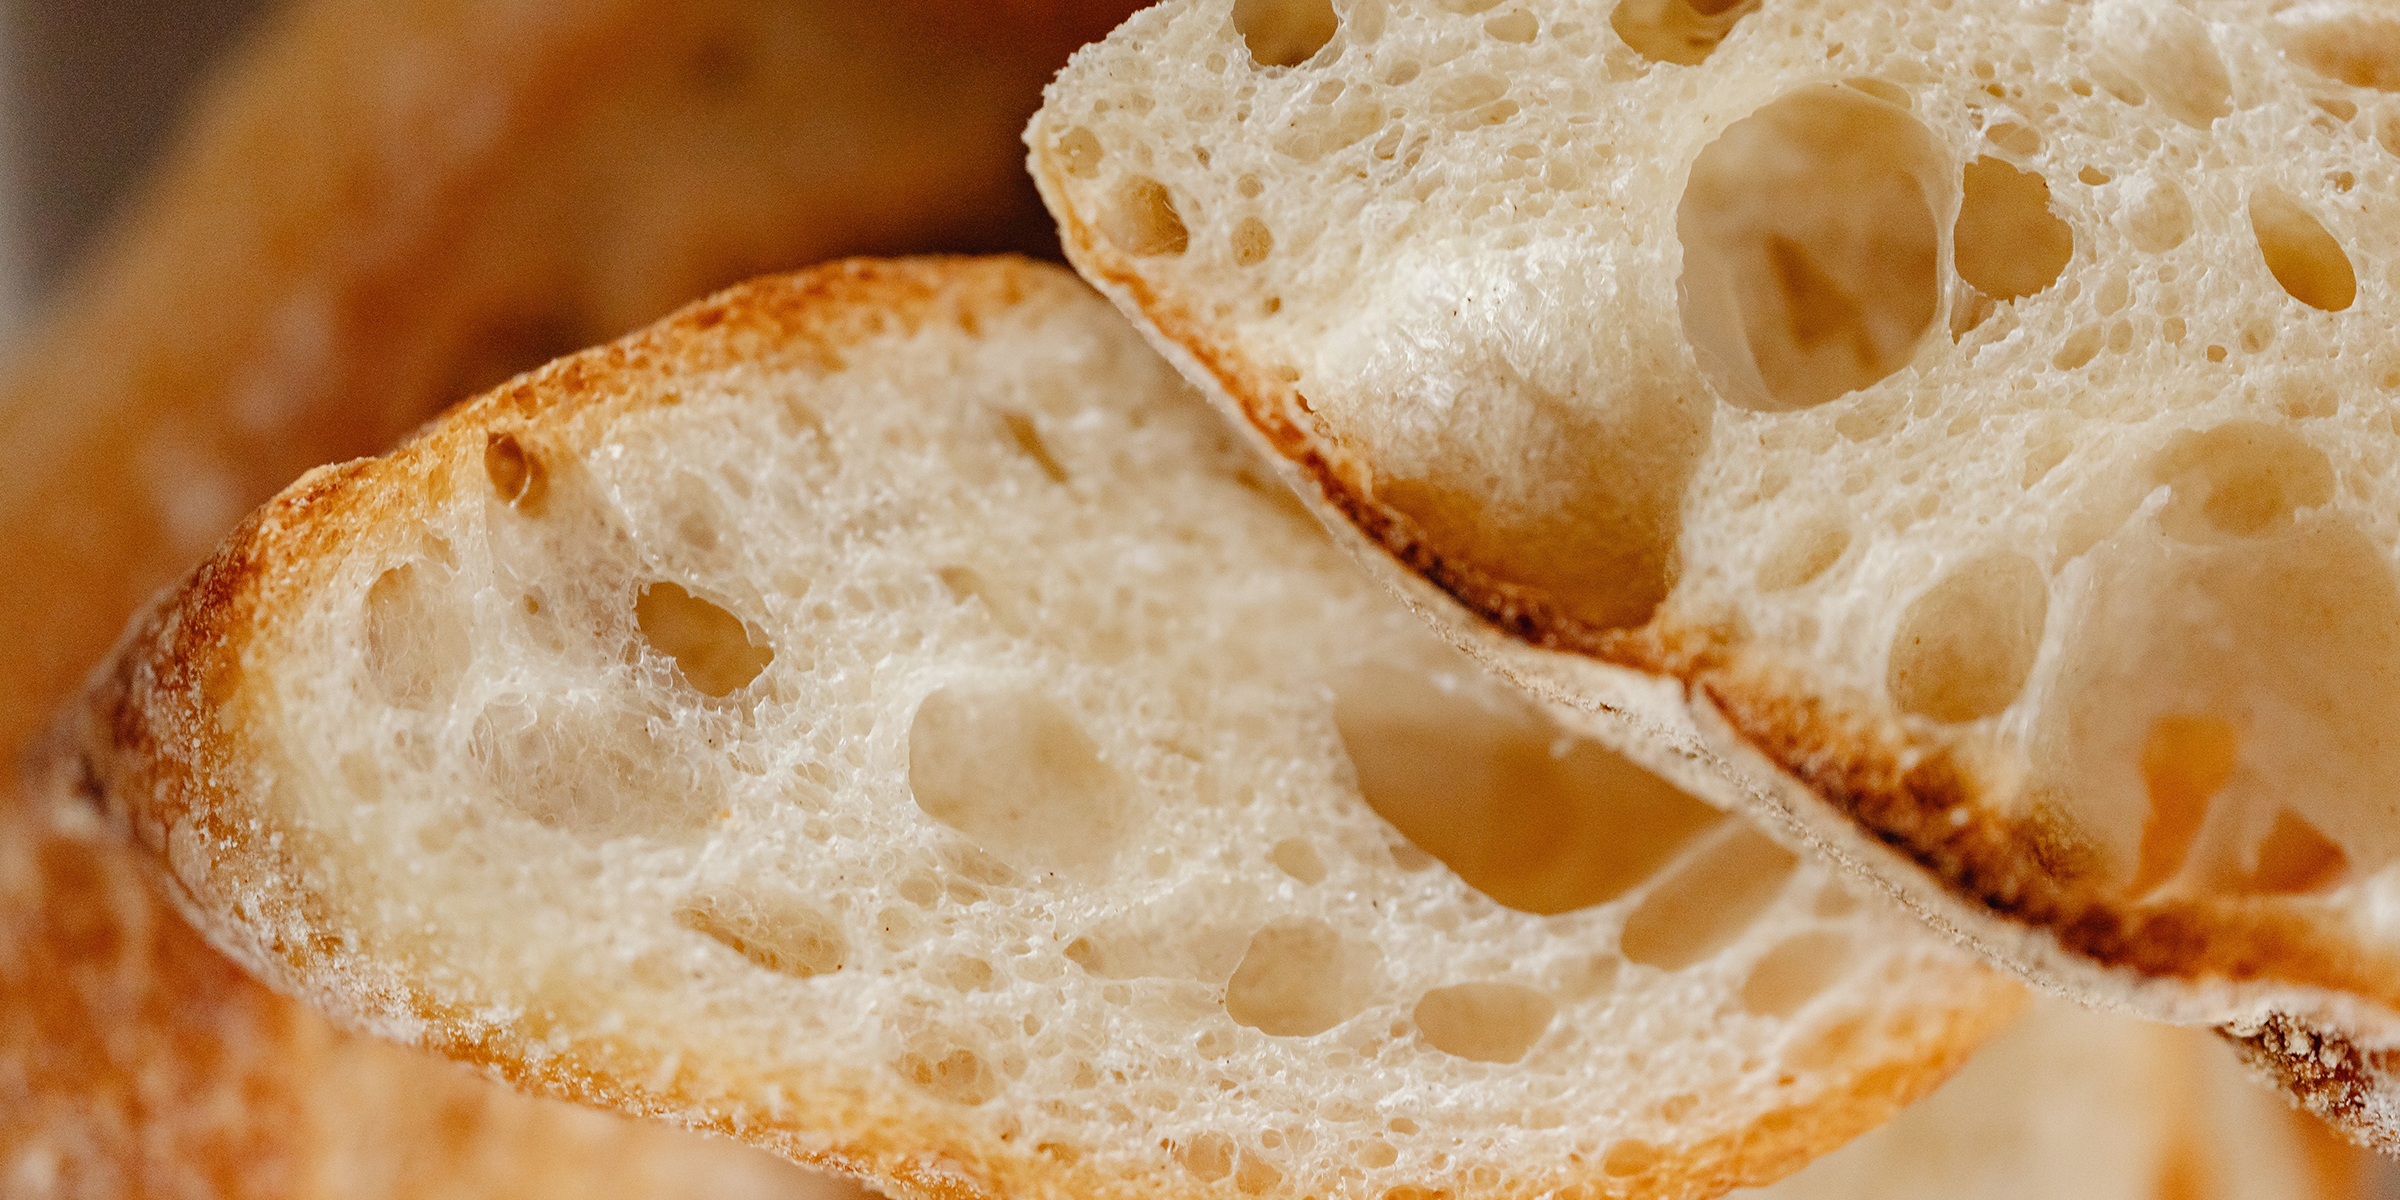 Complex Carbs to help with adhd (attention deficit hyperactivity disorder)